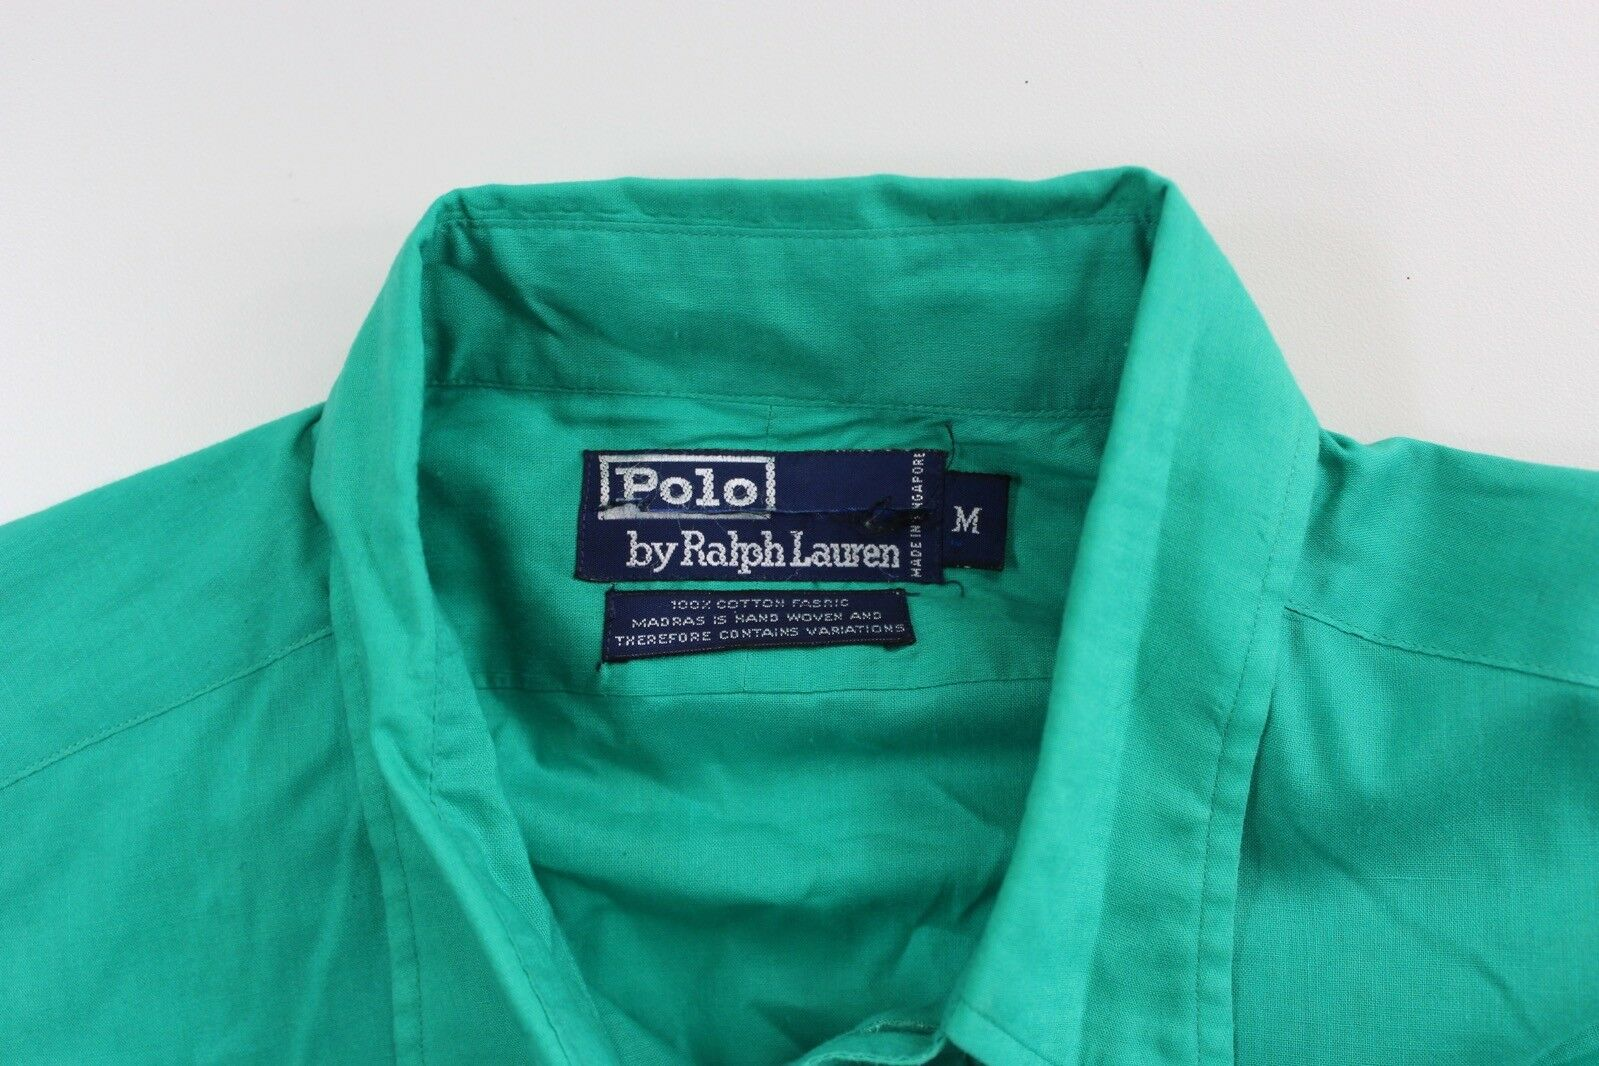 VTG 80's 90's Polo Ralph Lauren Happy Green Butto… - image 4